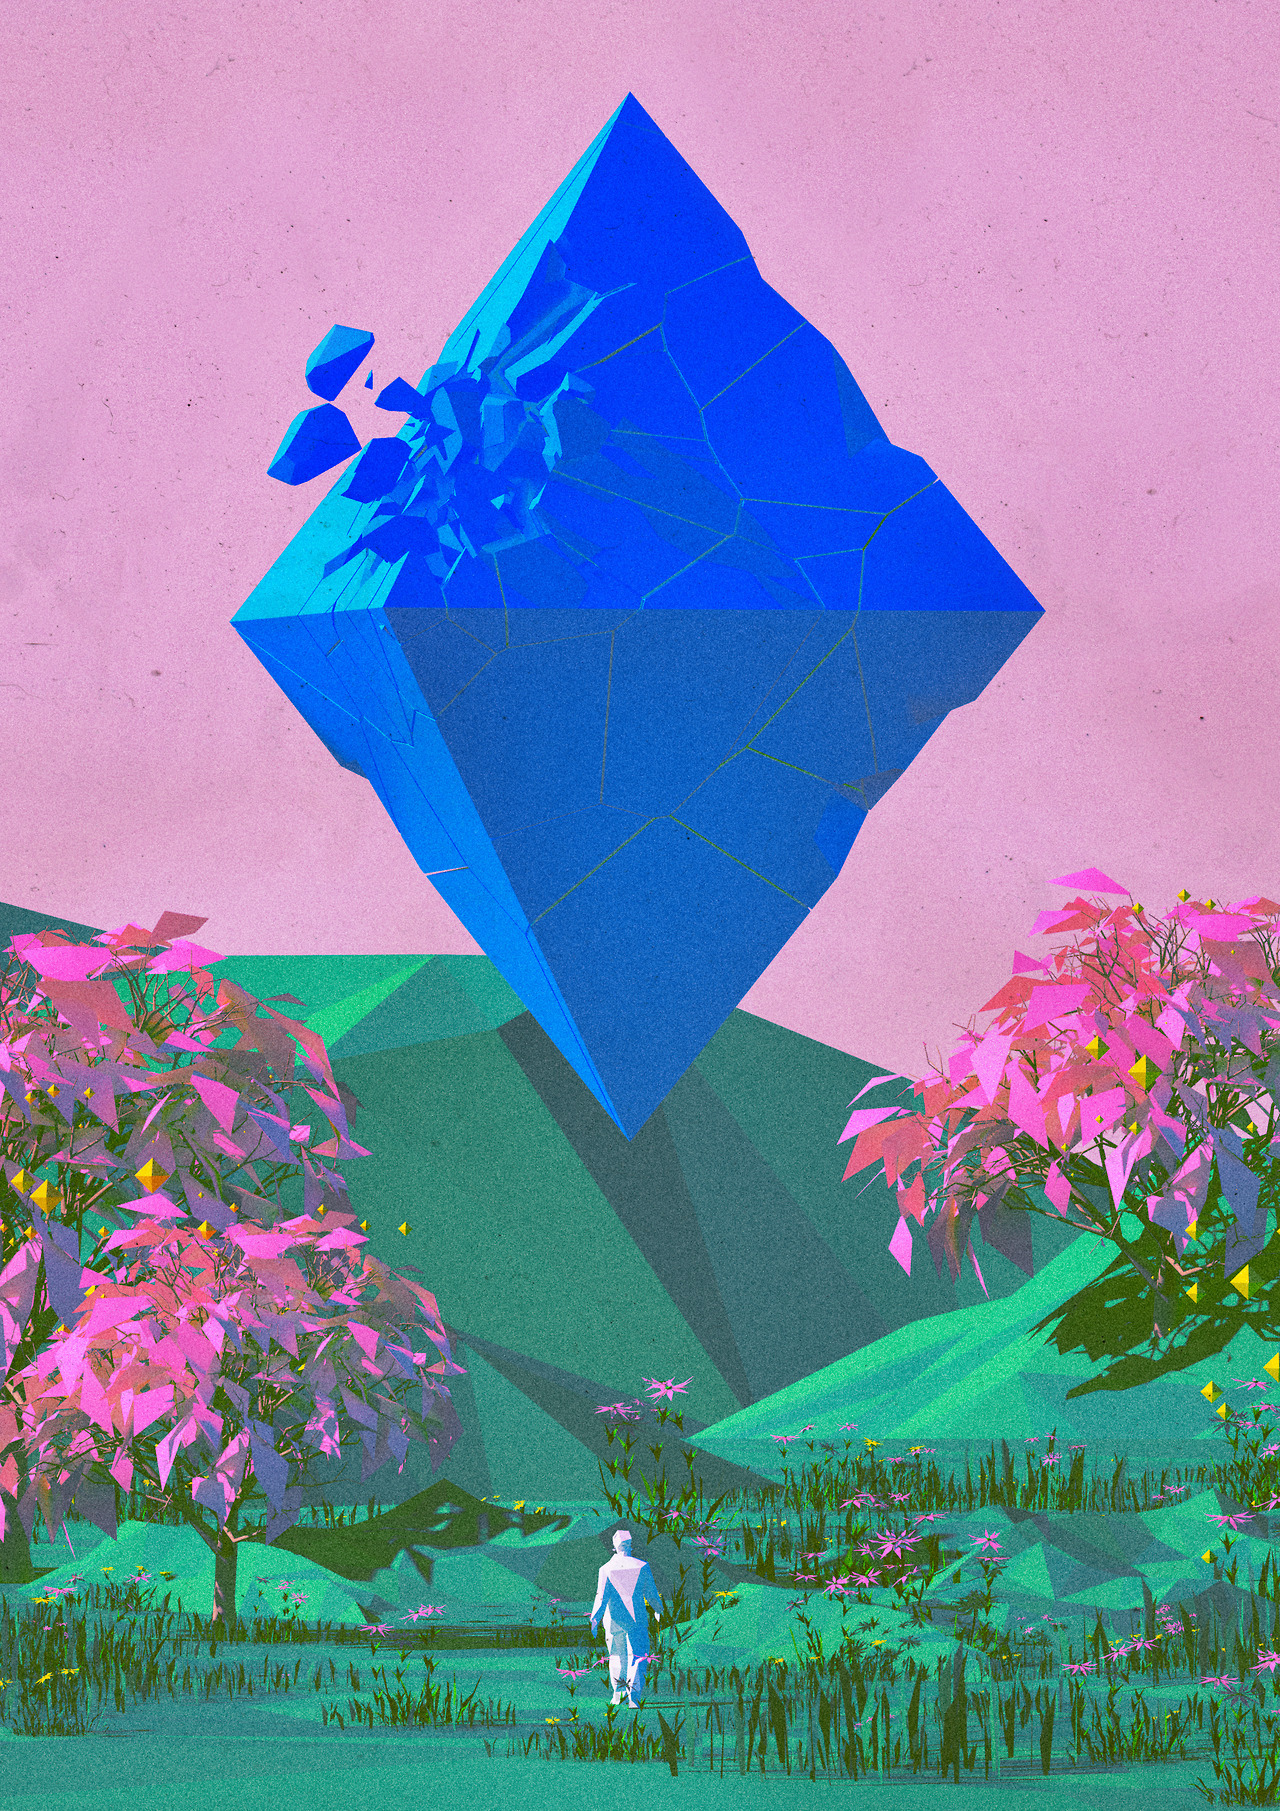 Posted by beeple